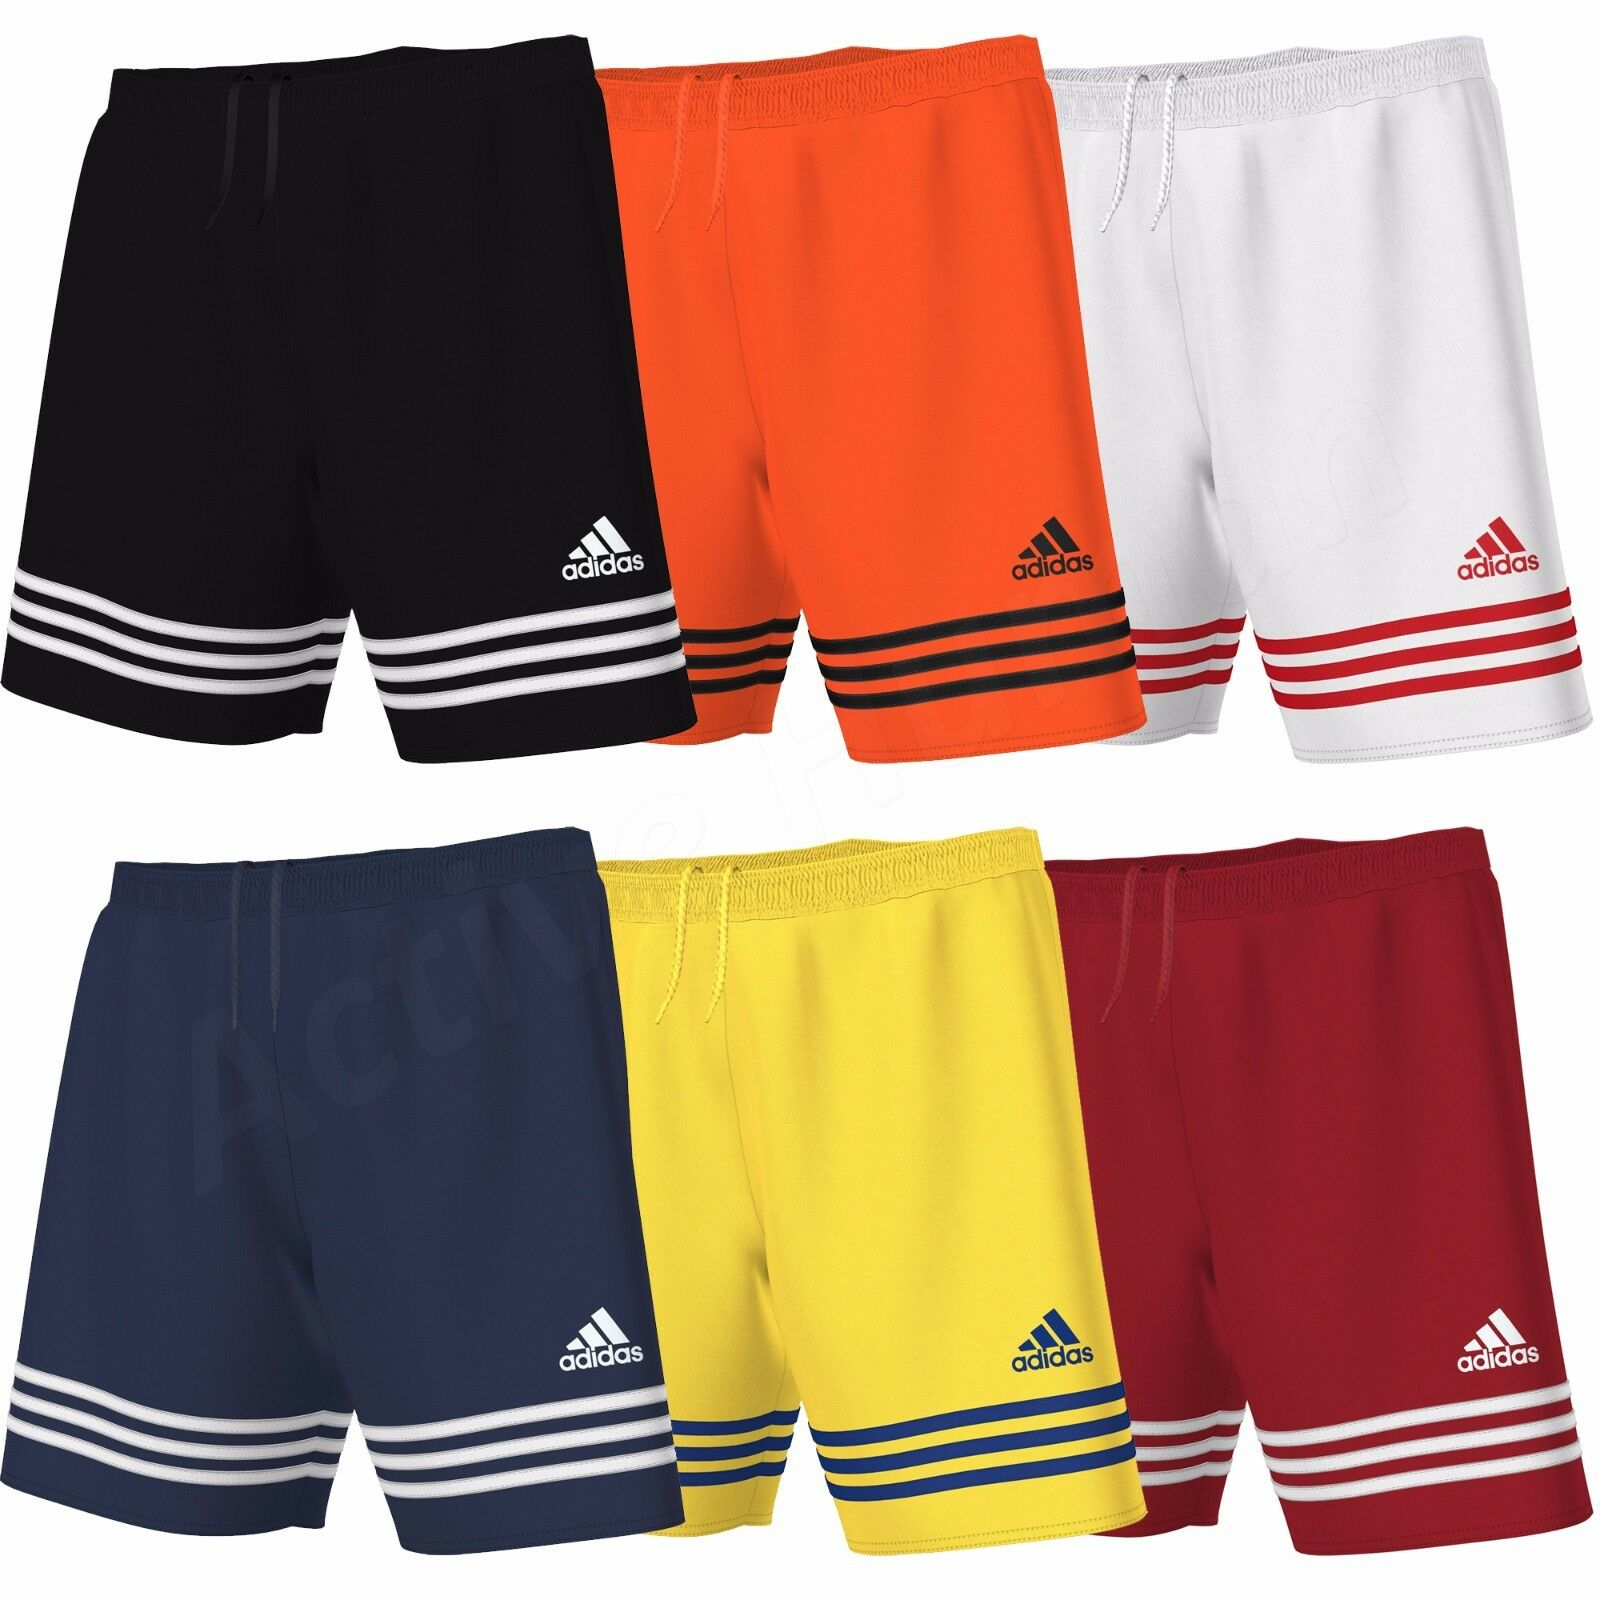 mens adidas shorts entrada climalite sports football gym. Black Bedroom Furniture Sets. Home Design Ideas